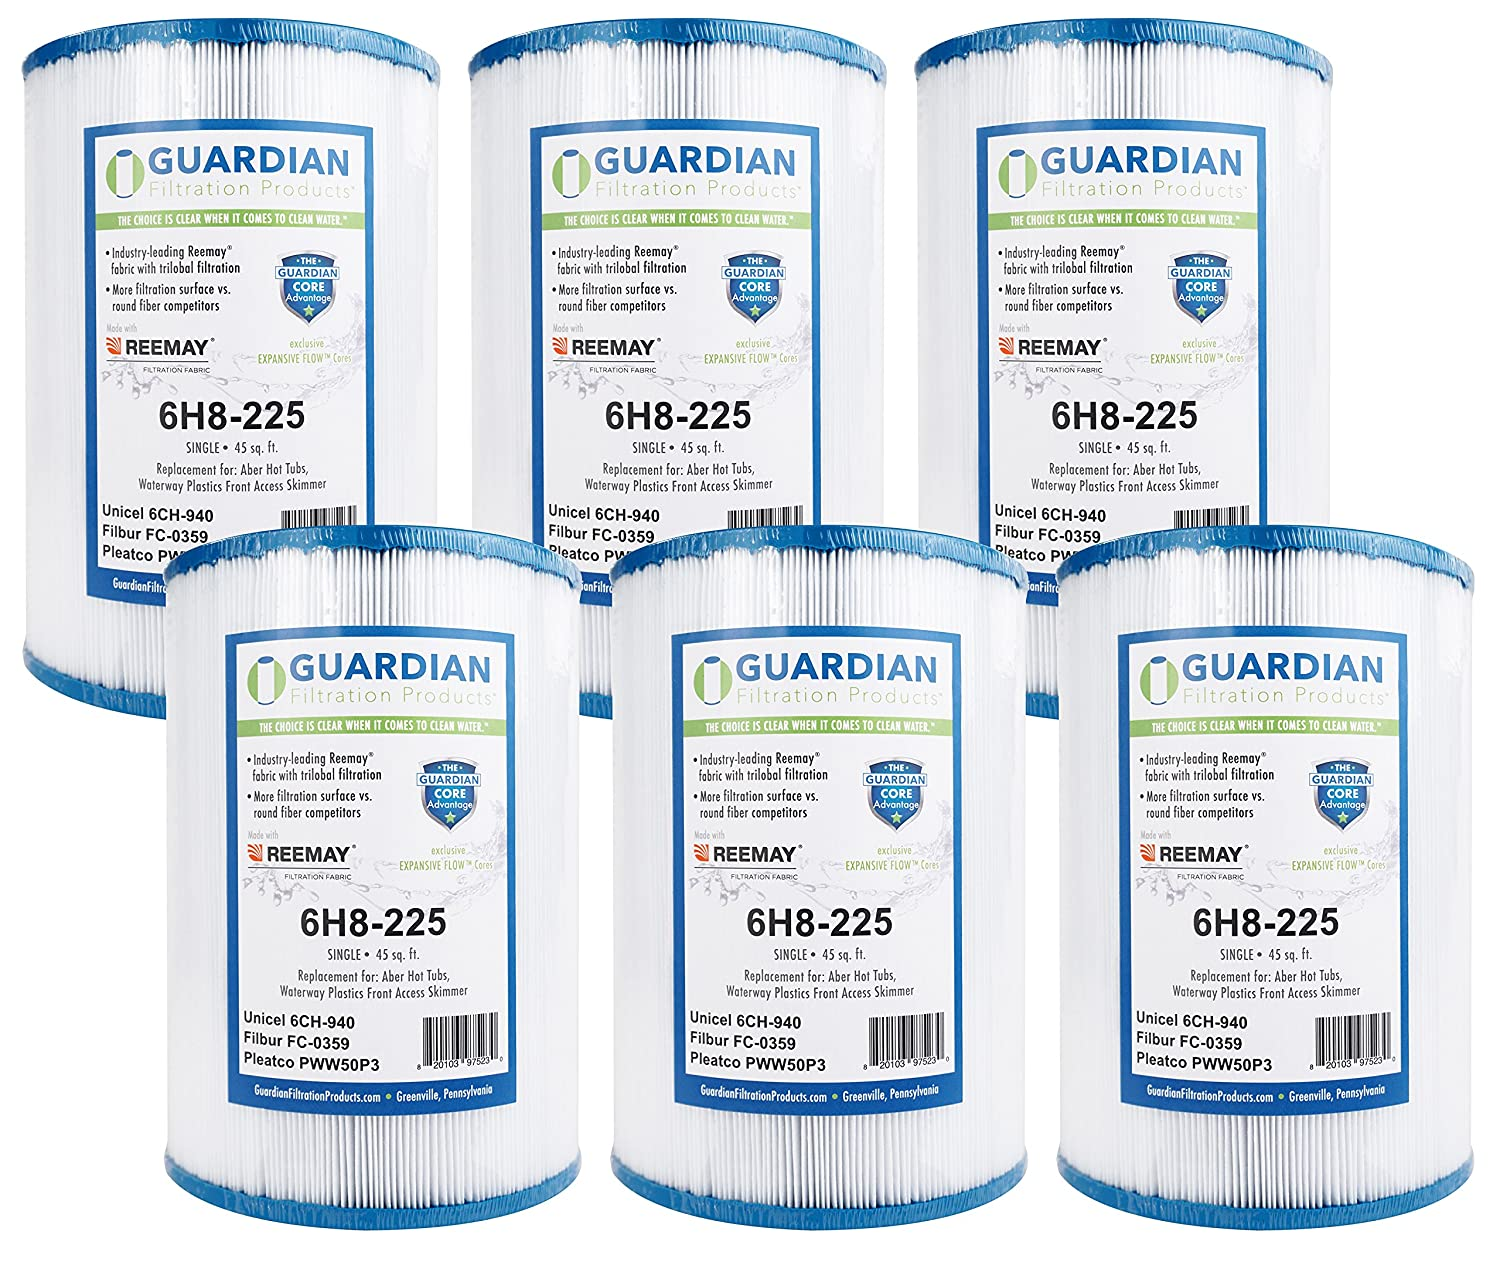 (6) Guardian Pool Spa Filter Replaces Unicel 6CH-940--Filbur FC-0359--Pleatco Pww50P3 Guardian Filtration Products 6H8-225-06